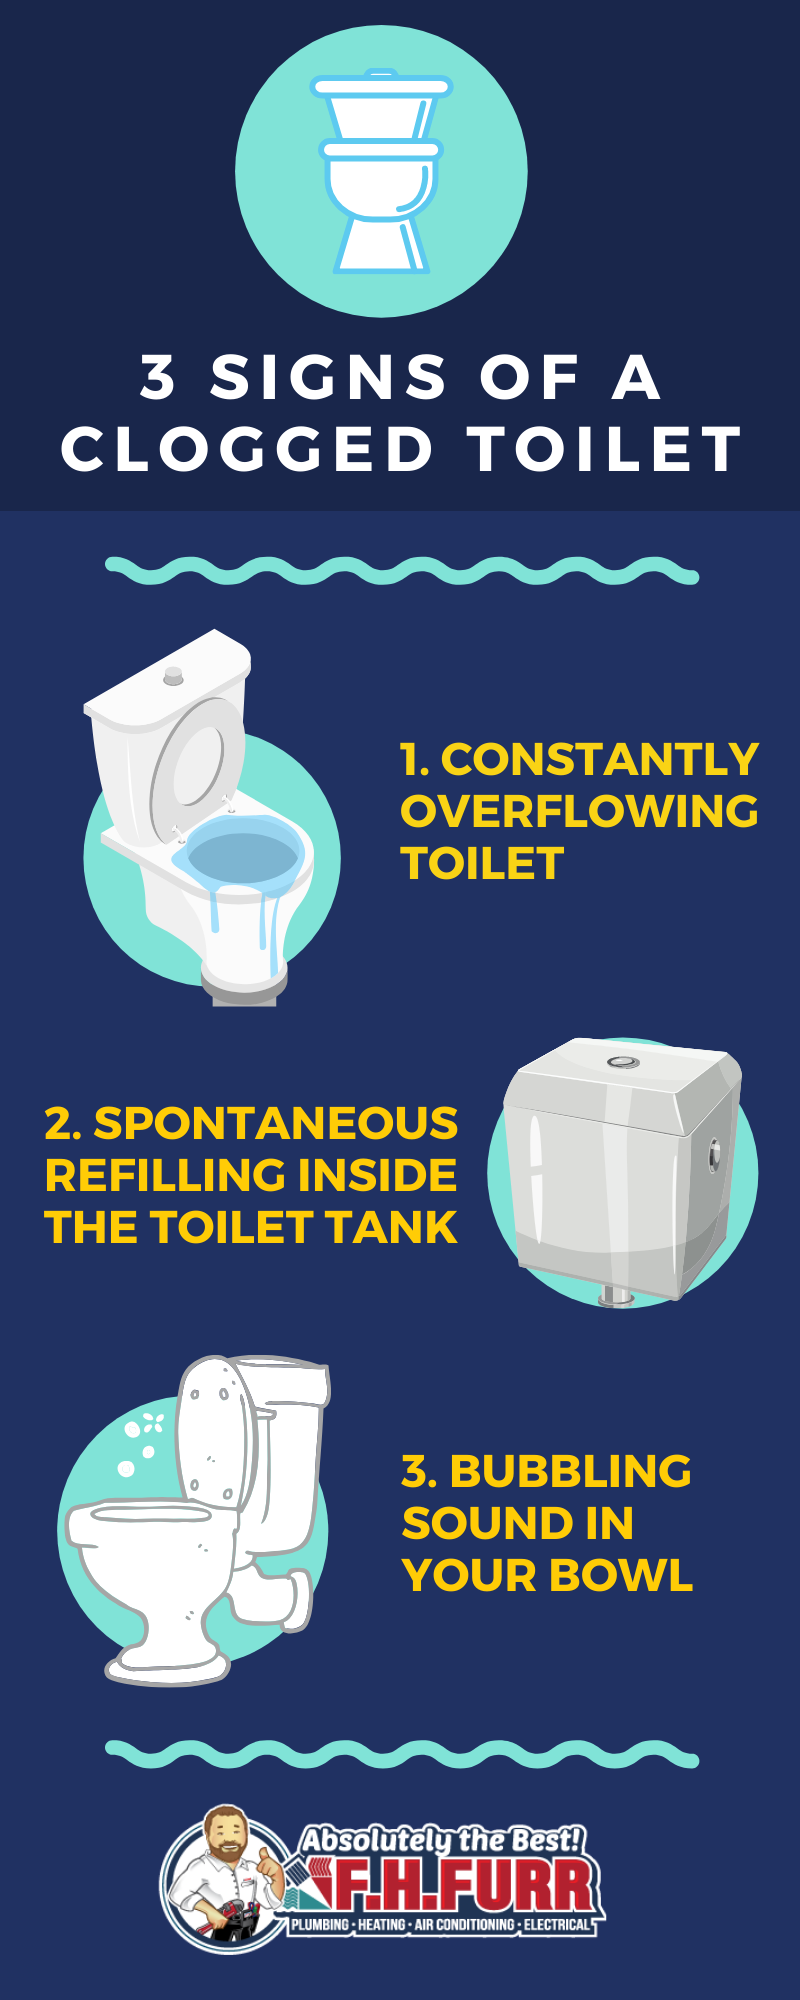 3 signs of a clogged toilet-2